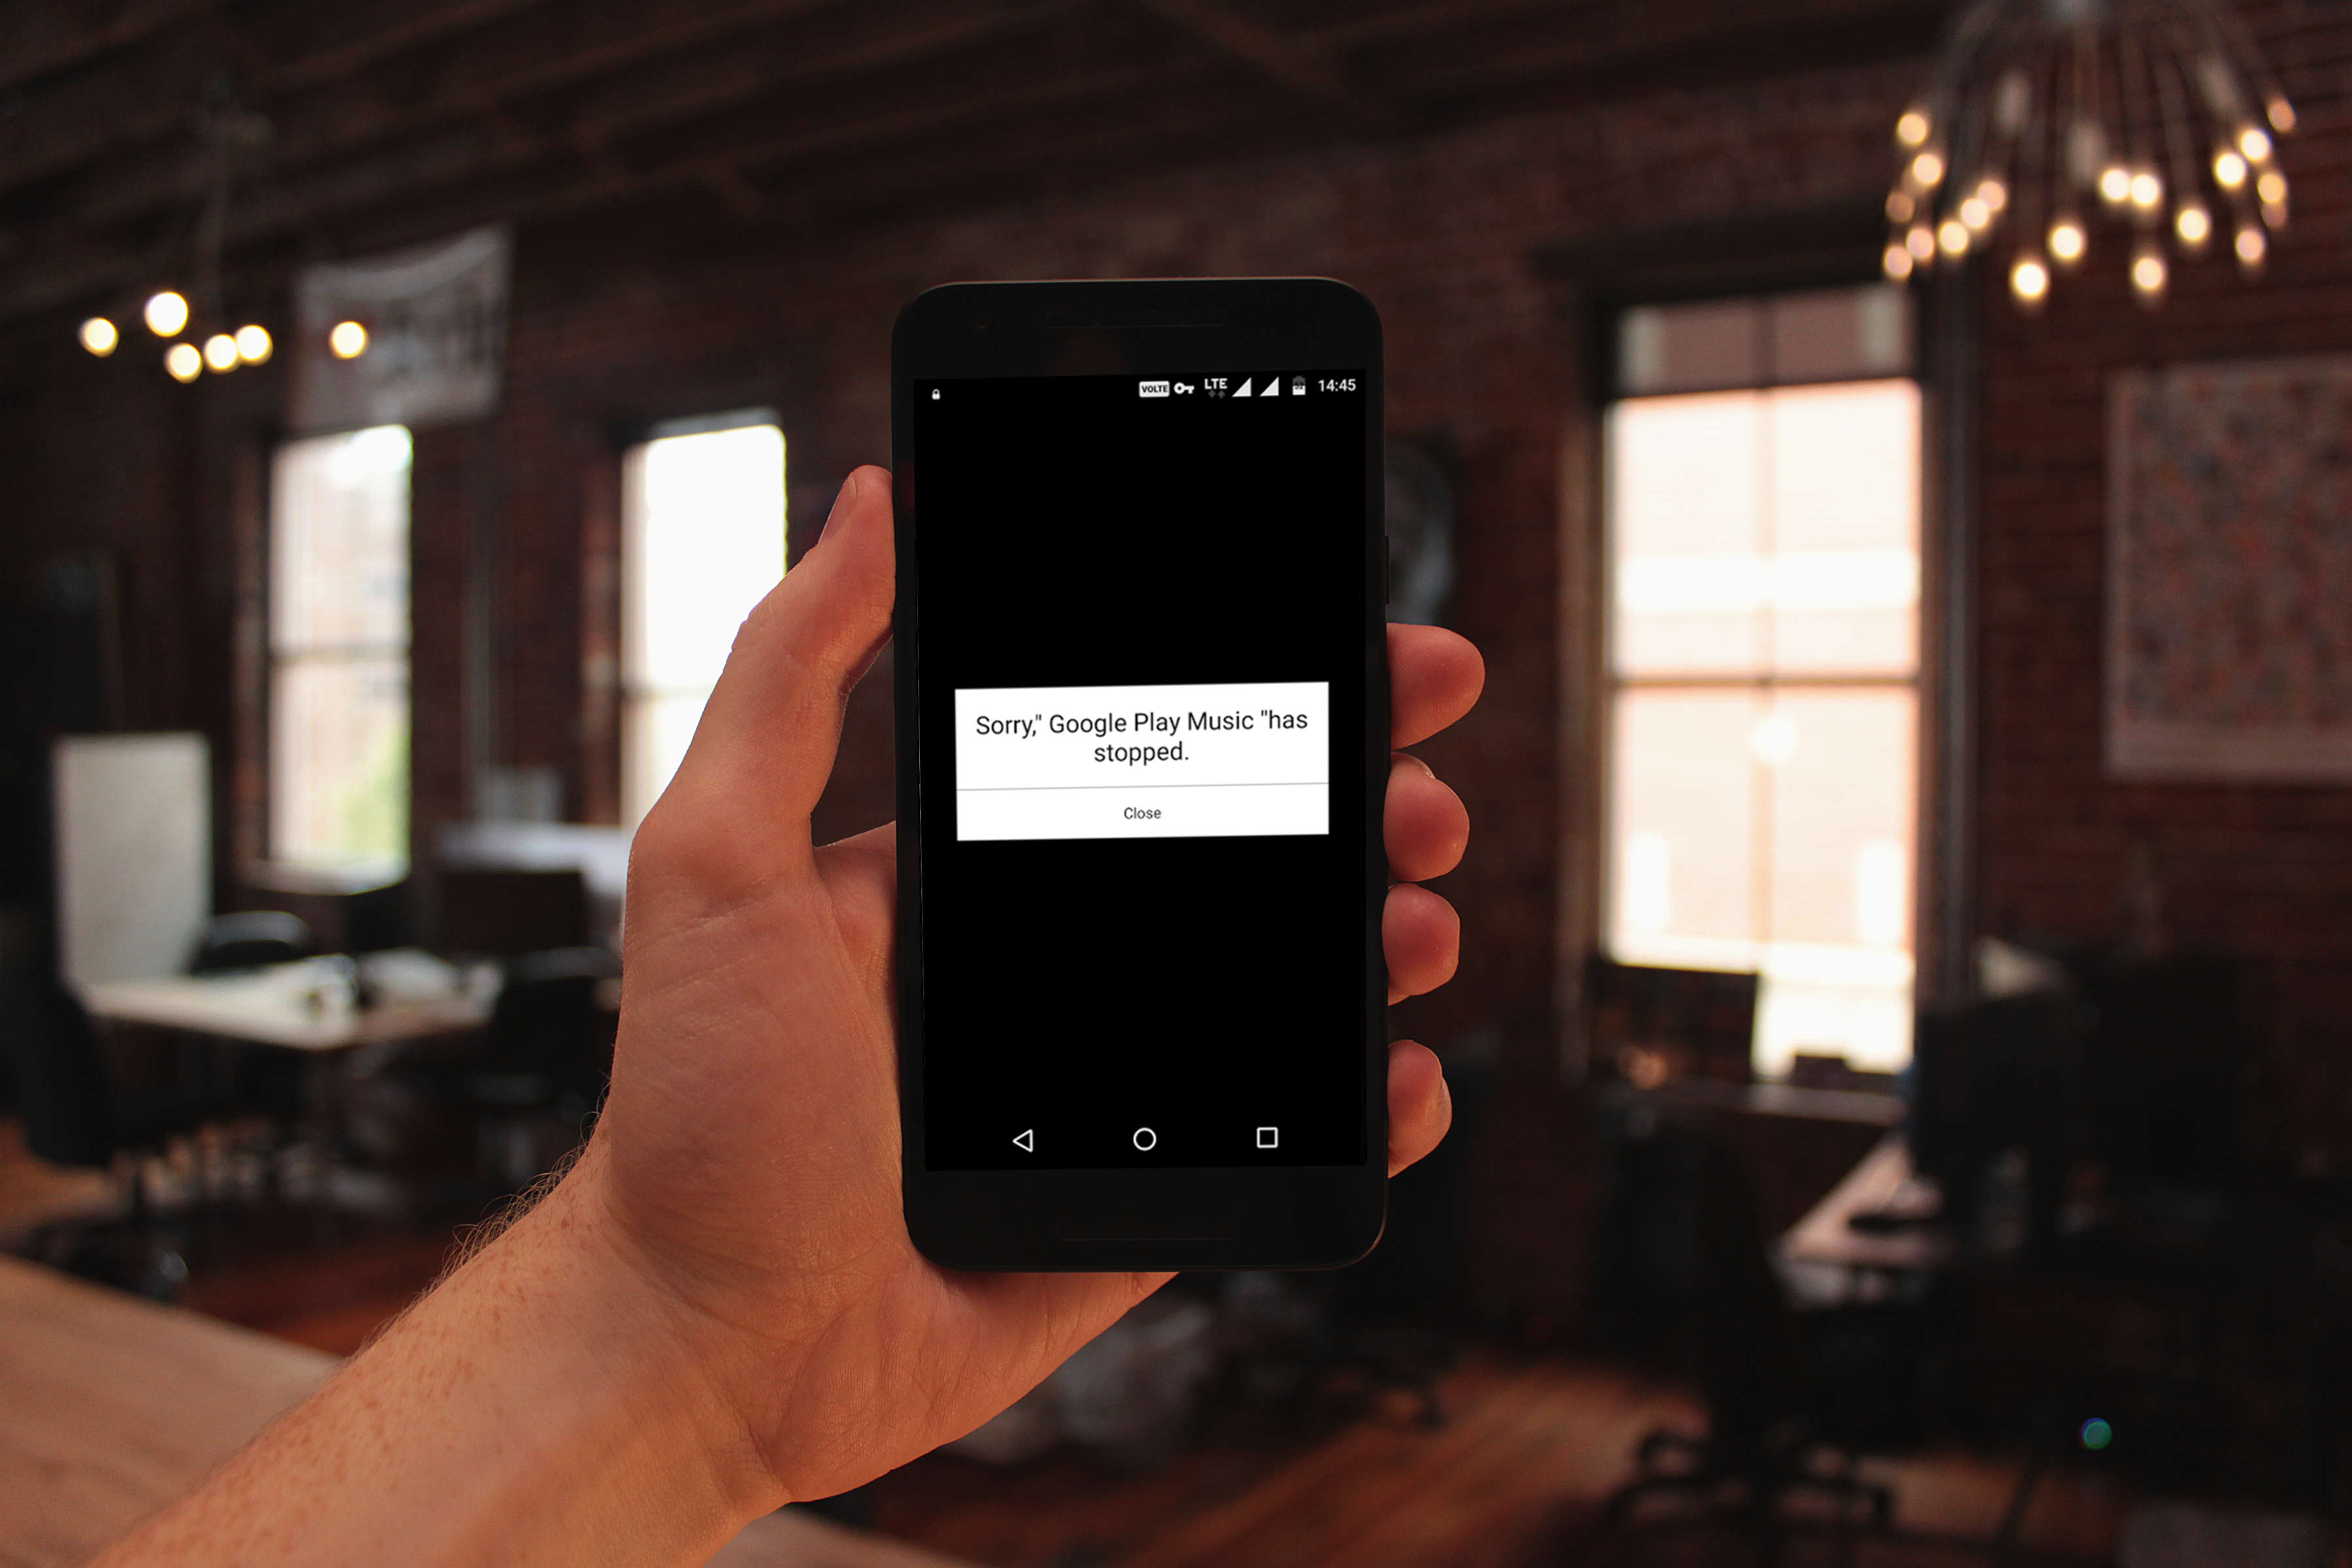 How To Fix Unfortunately App Has Stopped Error On Android Ubergizmo